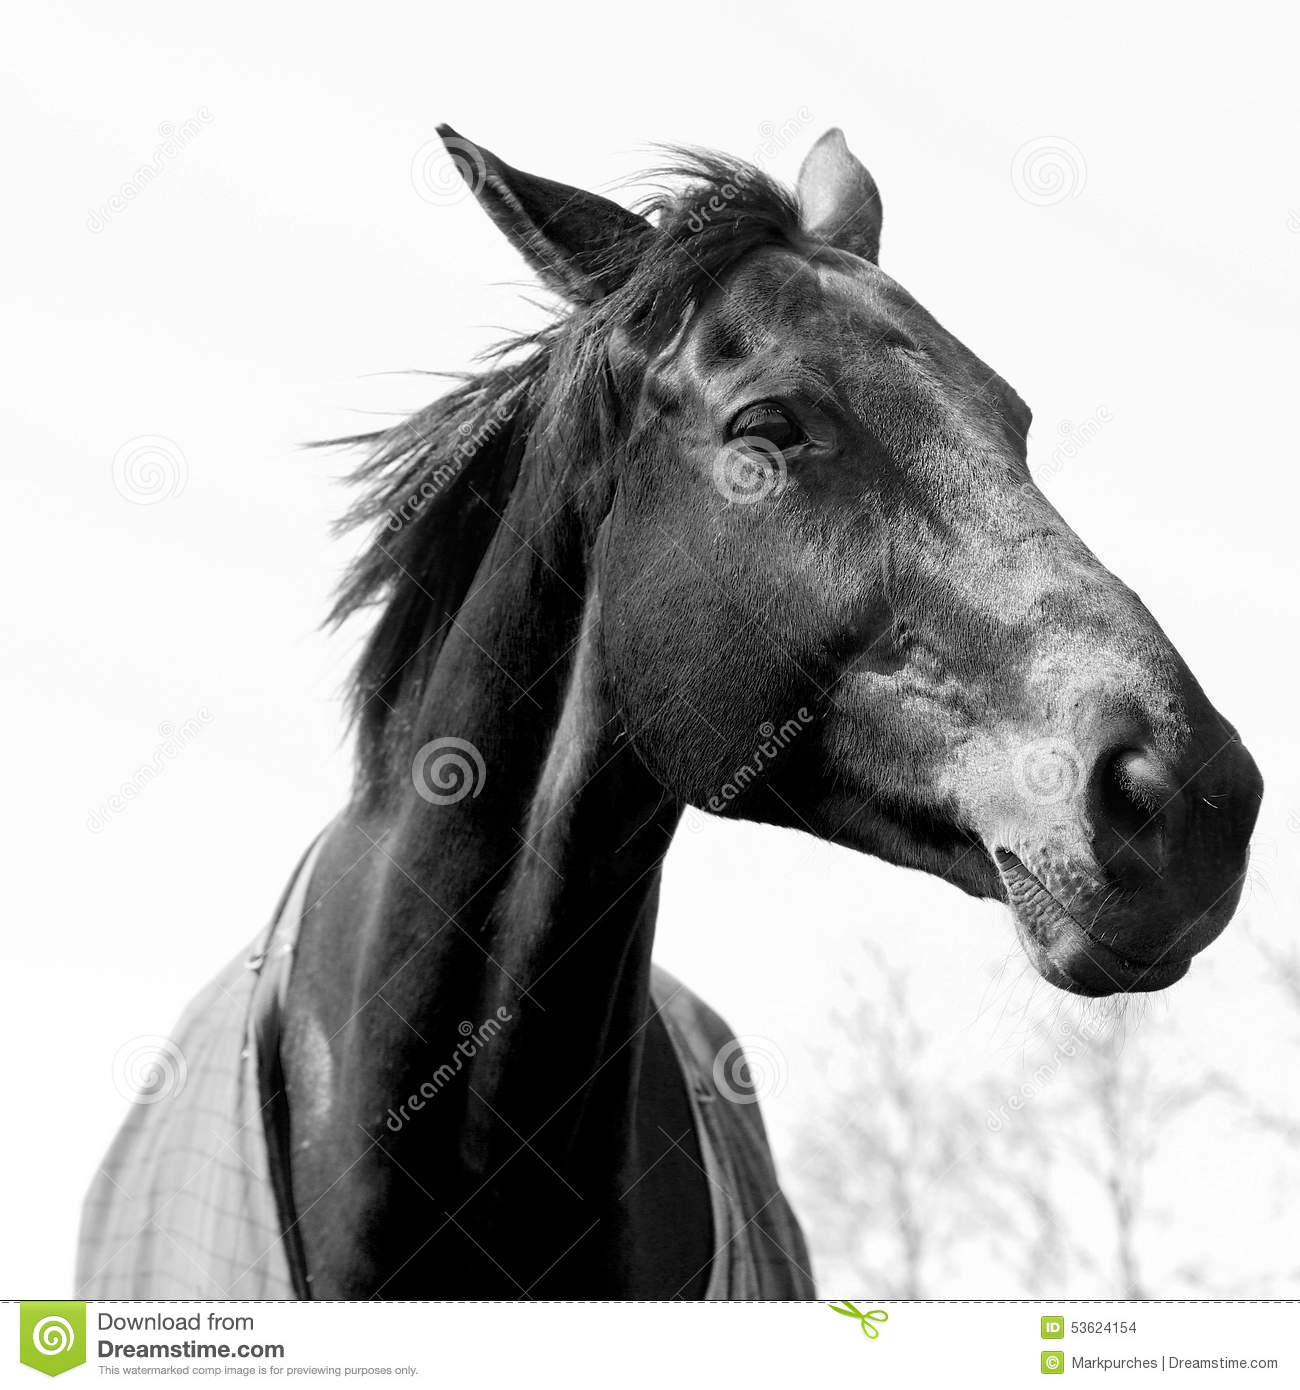 Beautiful black and white chestnut or light bay horse portrait showing head and neck and part of body the elegant horse is wearing a purple horse coat